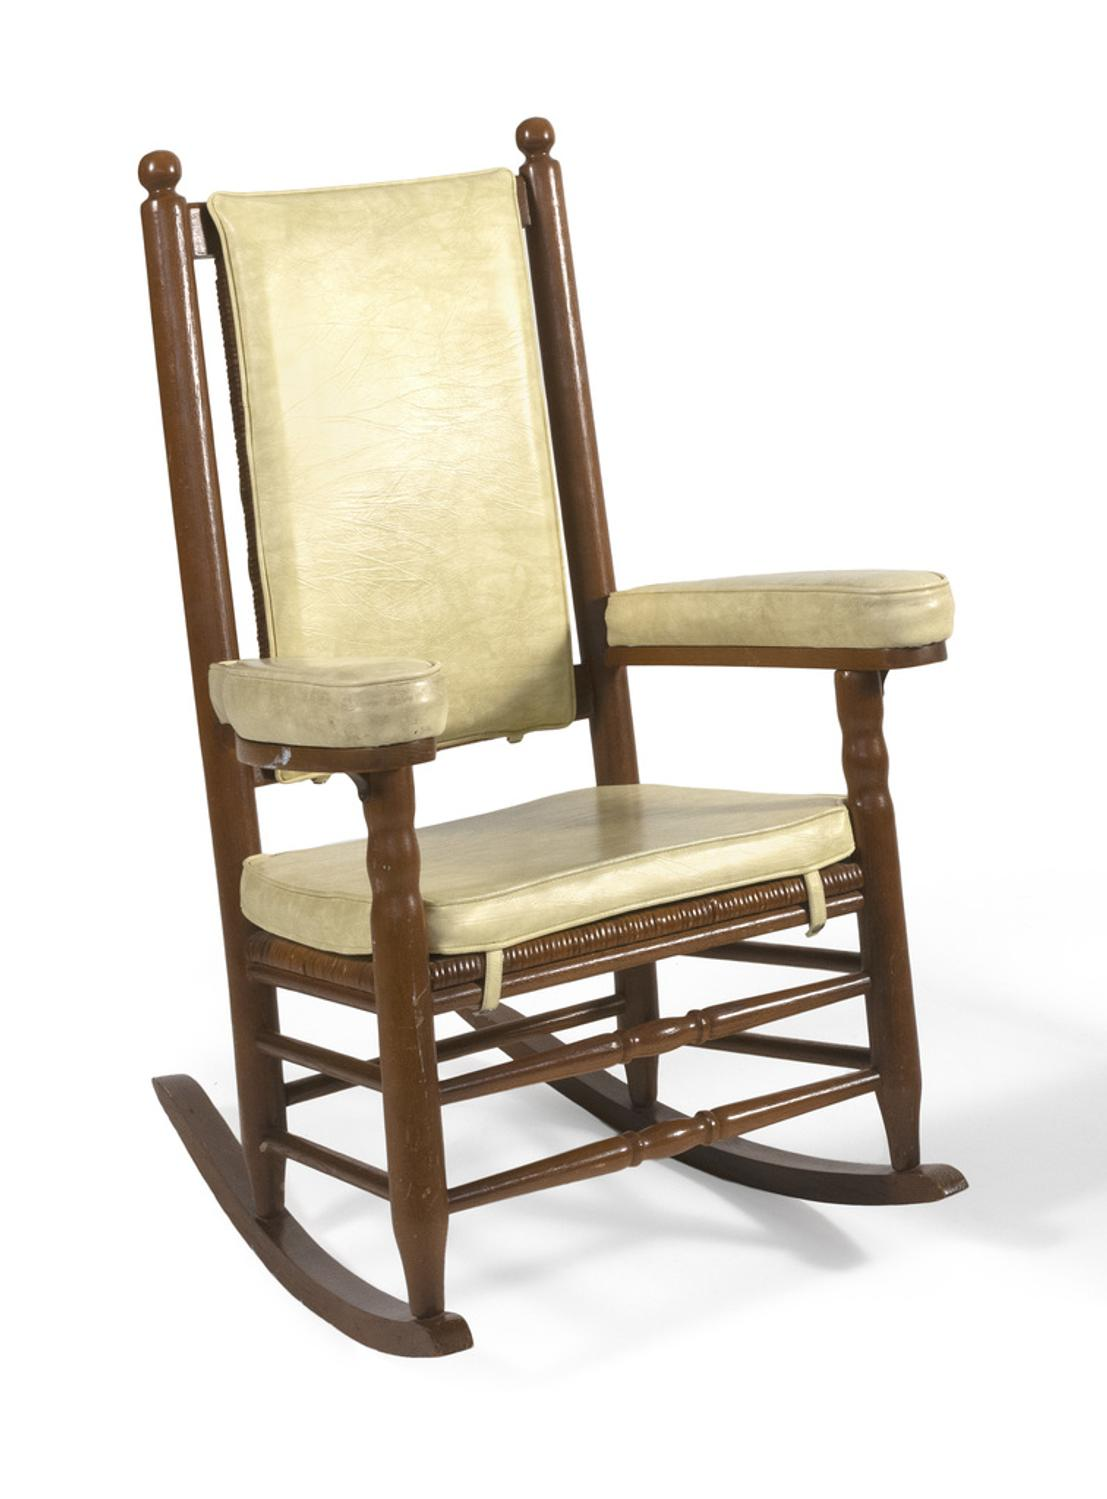 Iconic John F Kennedy Rocking Chair Sells For 60 000 At